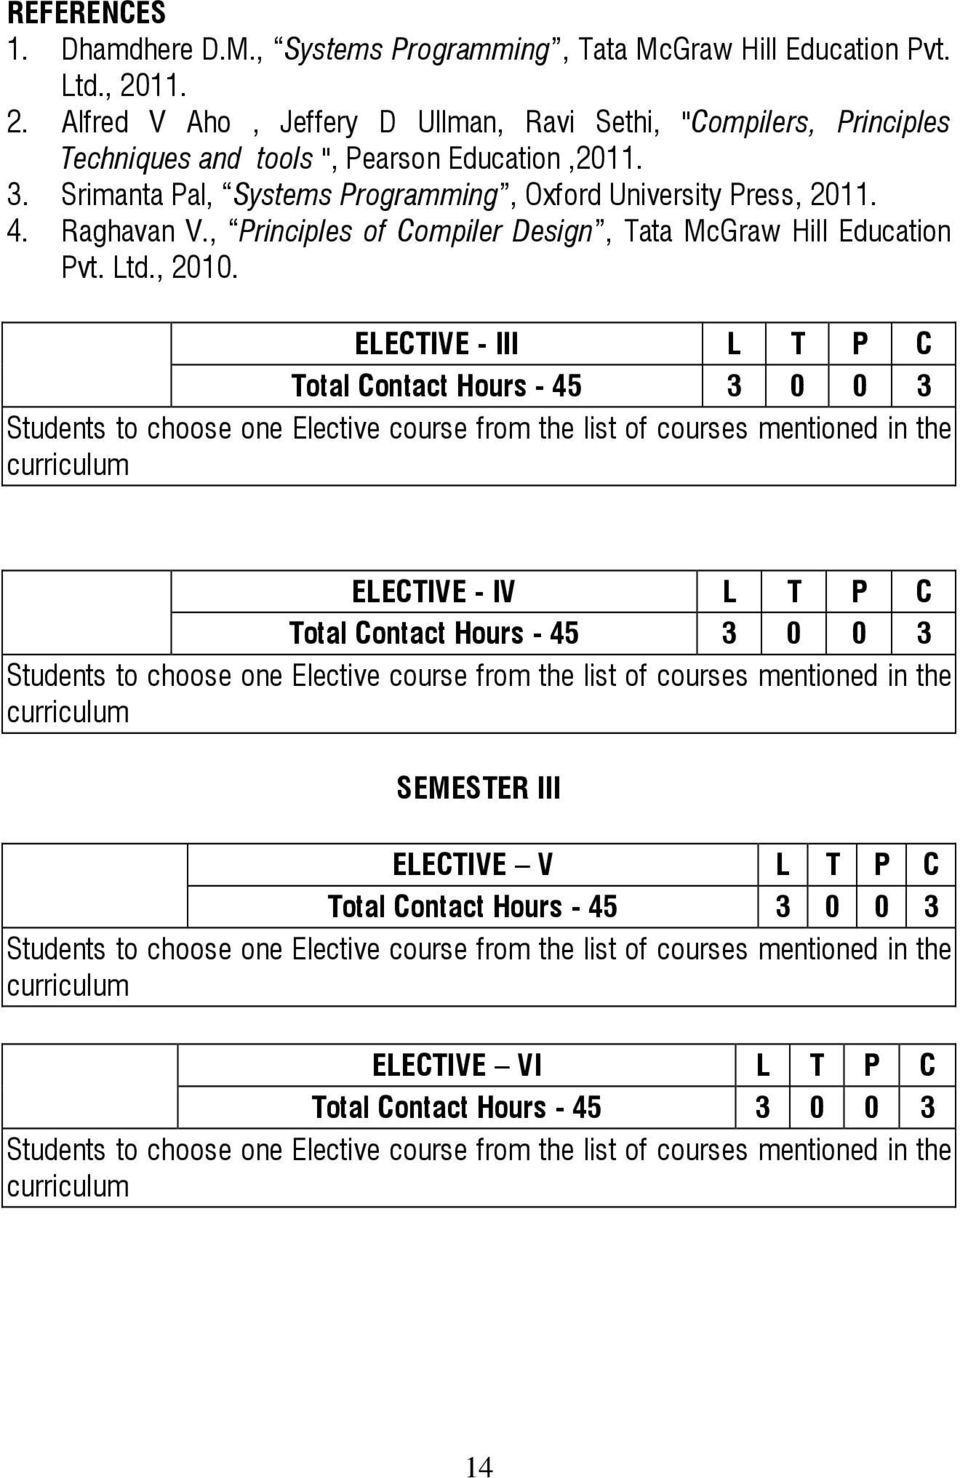 ELECTIVE - III L T P C Total Contact Hours - 45 3 0 0 3 Students to choose one Elective course from the list of courses mentioned in the curriculum ELECTIVE - IV L T P C Total Contact Hours - 45 3 0